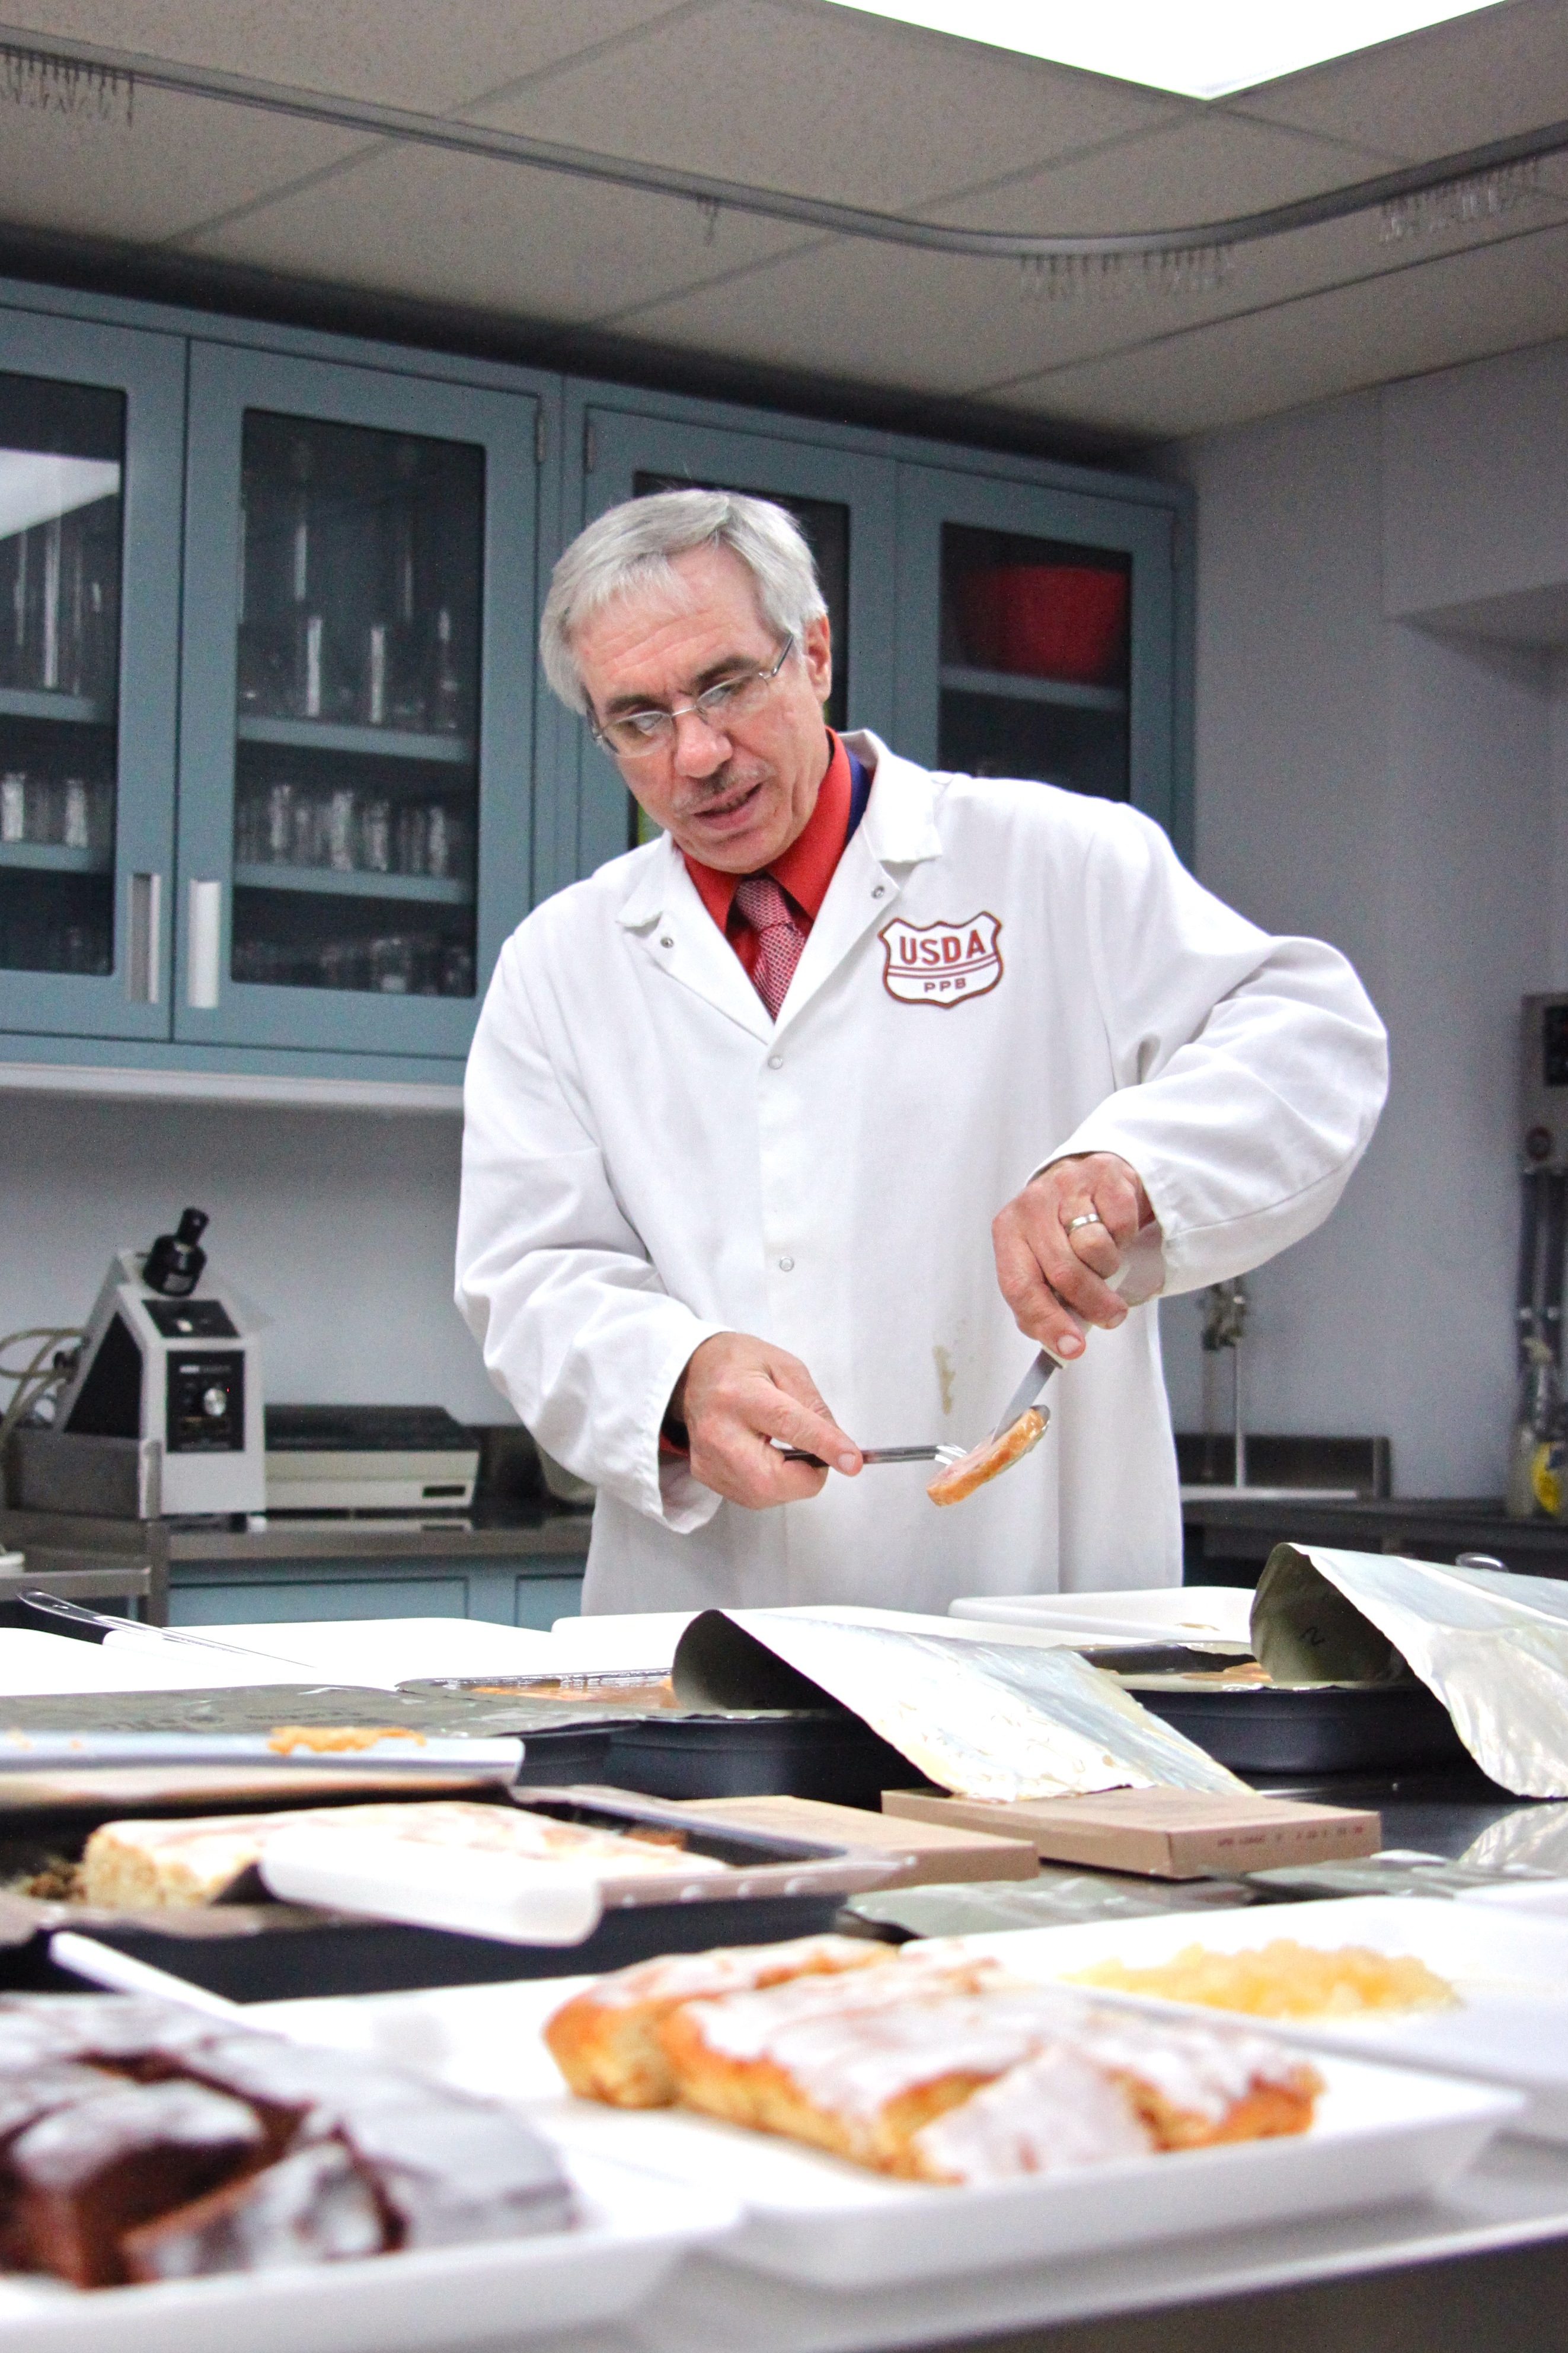 Alimentos Porno Tube showing porn images for meat inspection porn   www.porndaa